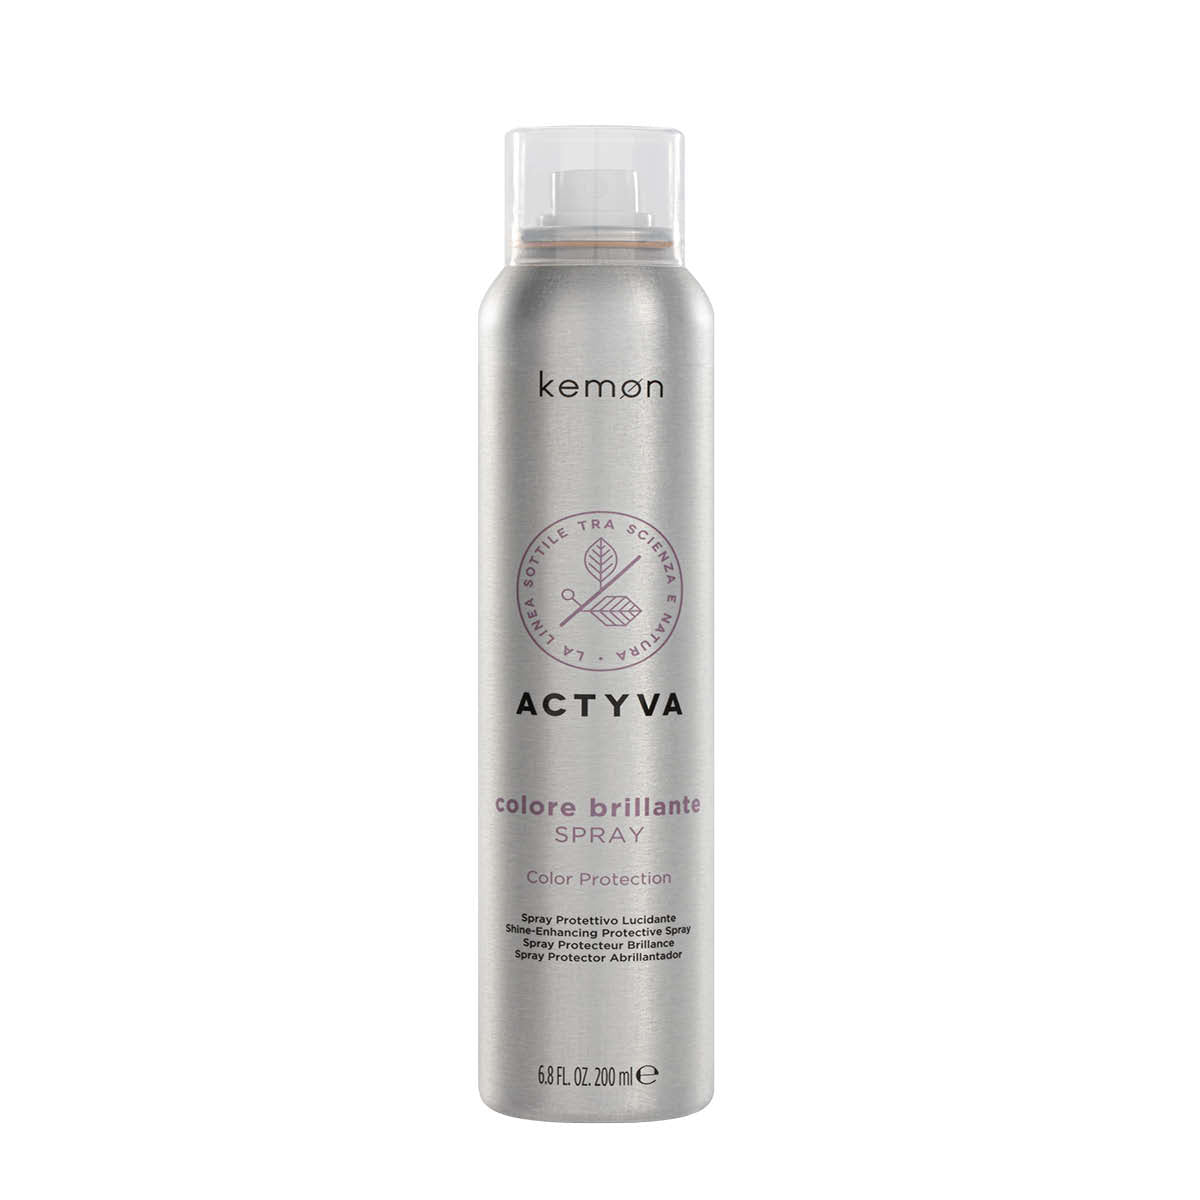 Kemon Actyva Colore Brilliante Colour Protection Spray